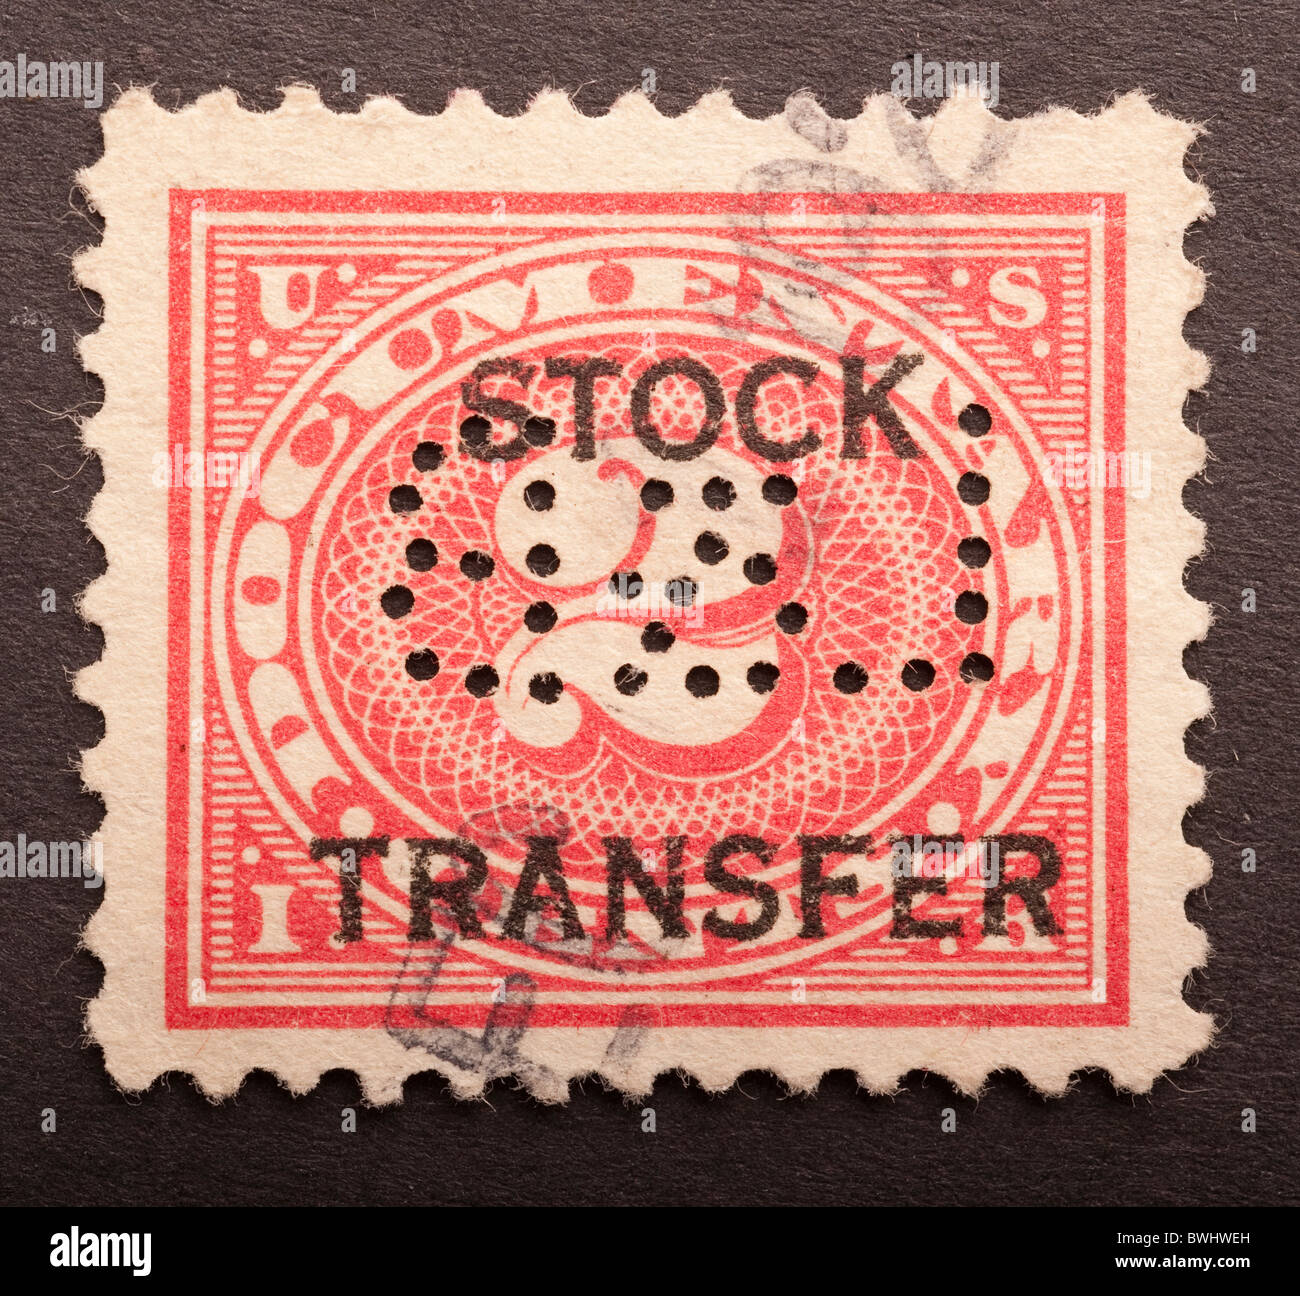 United States Inland Revenue Stamp 2 Cents